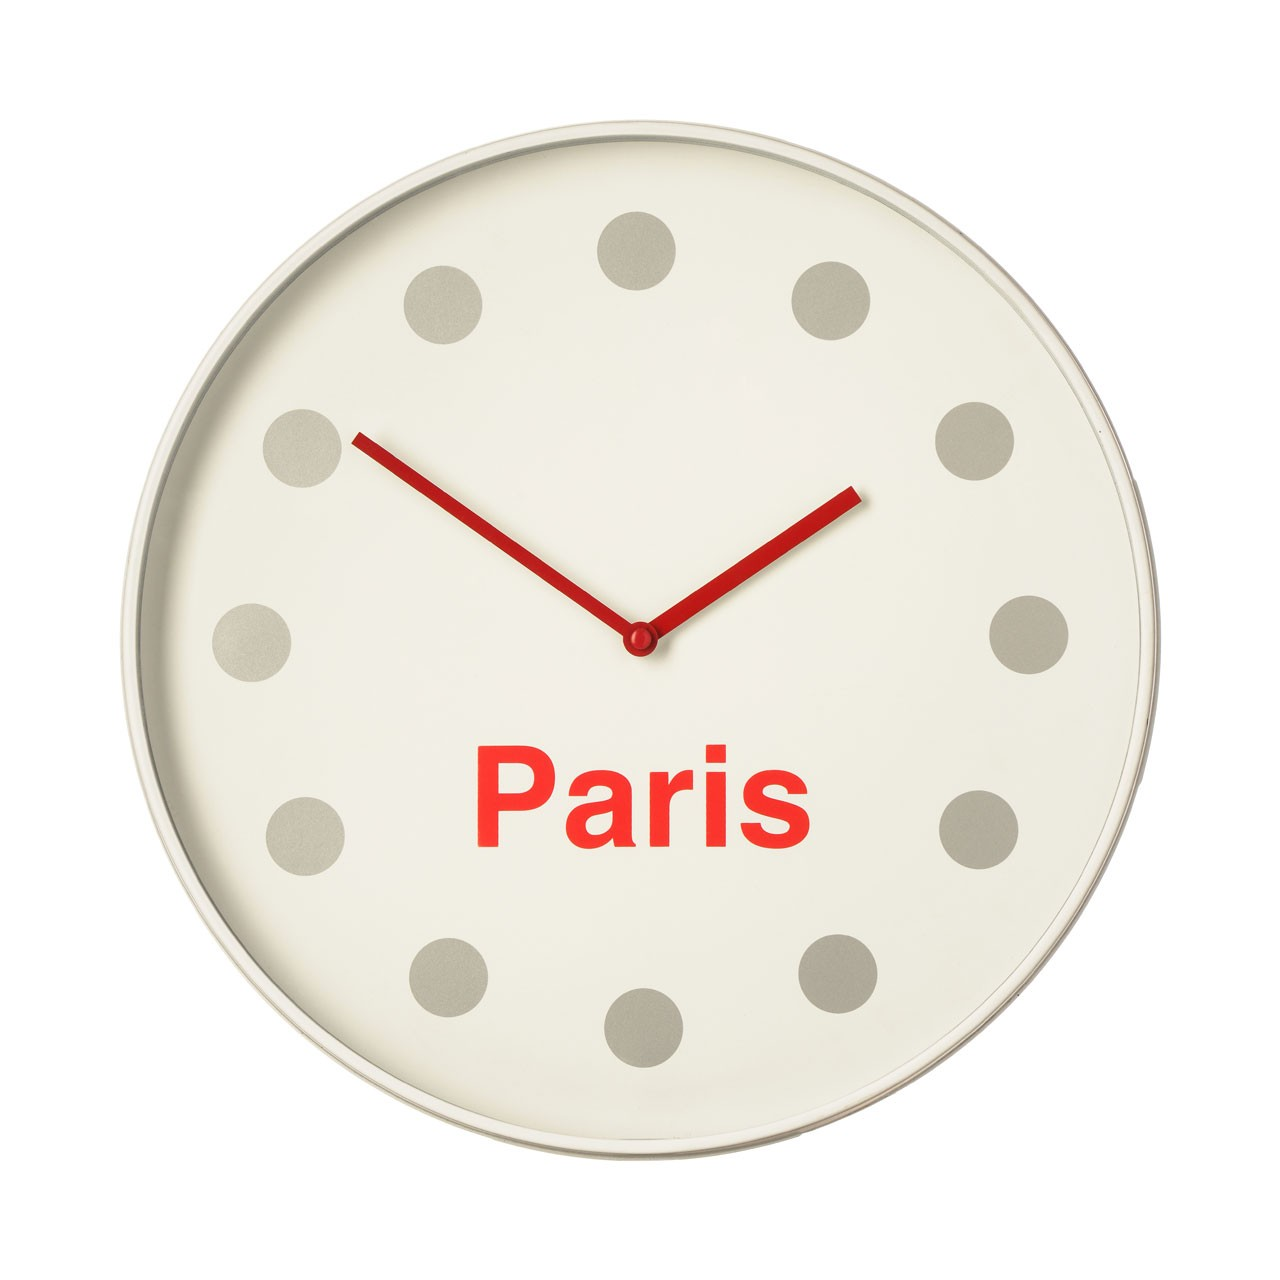 Prime Furnishing Paris Wall Clock